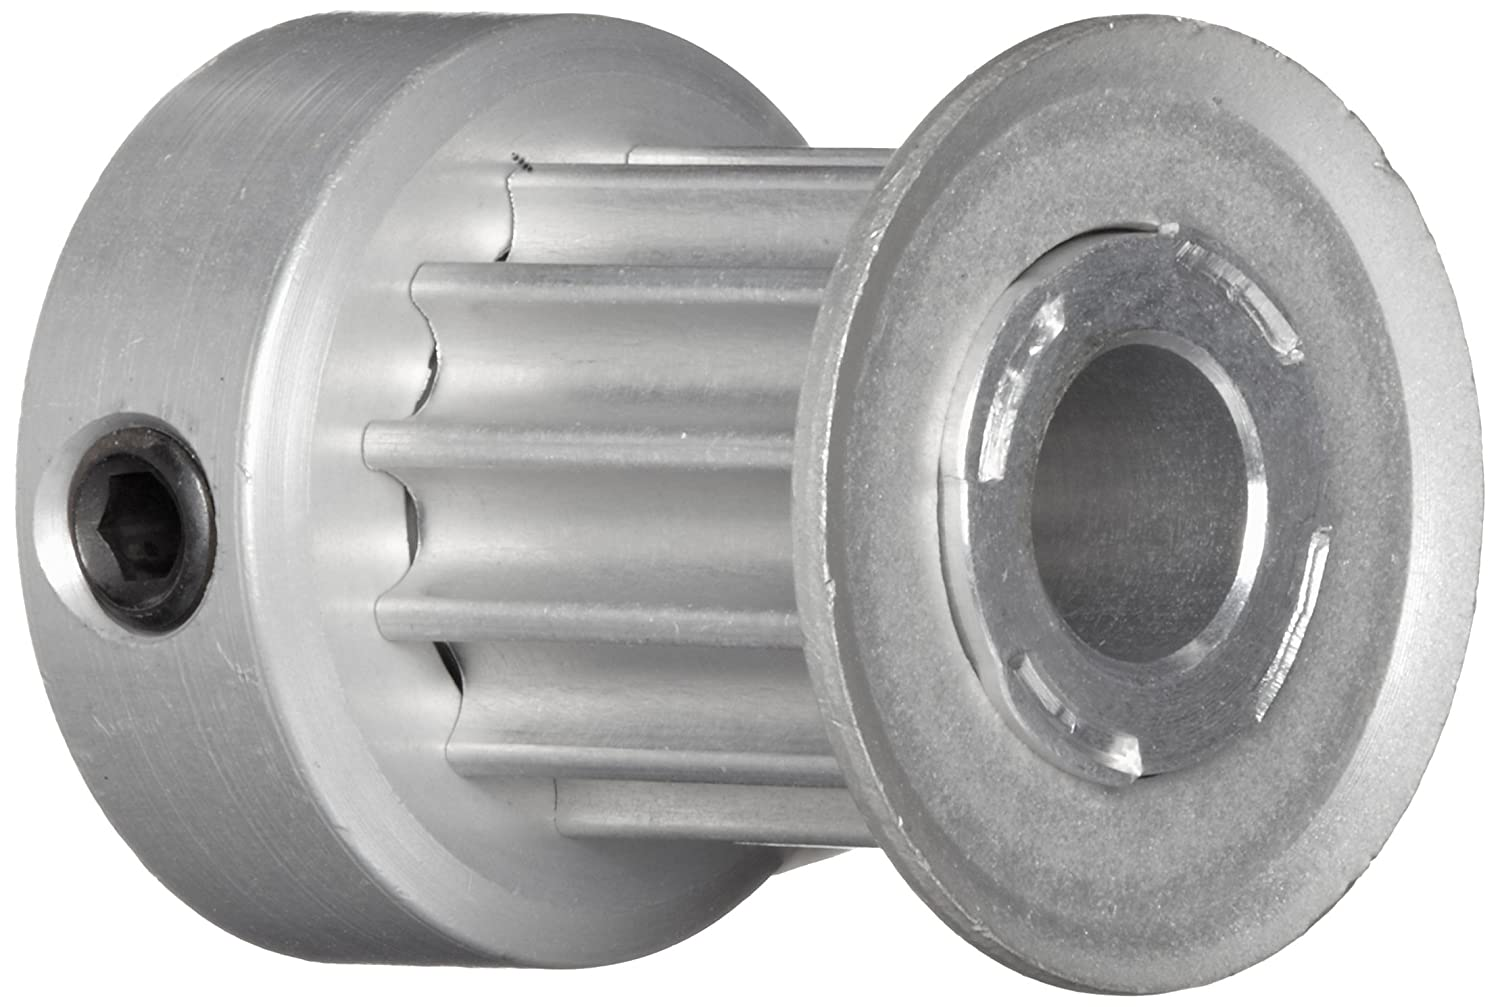 Boston Gear PA3016DF090 Timing Pulley for 9mm Wide Belts 16 Groves 0.188 Bore Diameter 0.572 Outside Diameter 0.688 Overall Length Aluminum